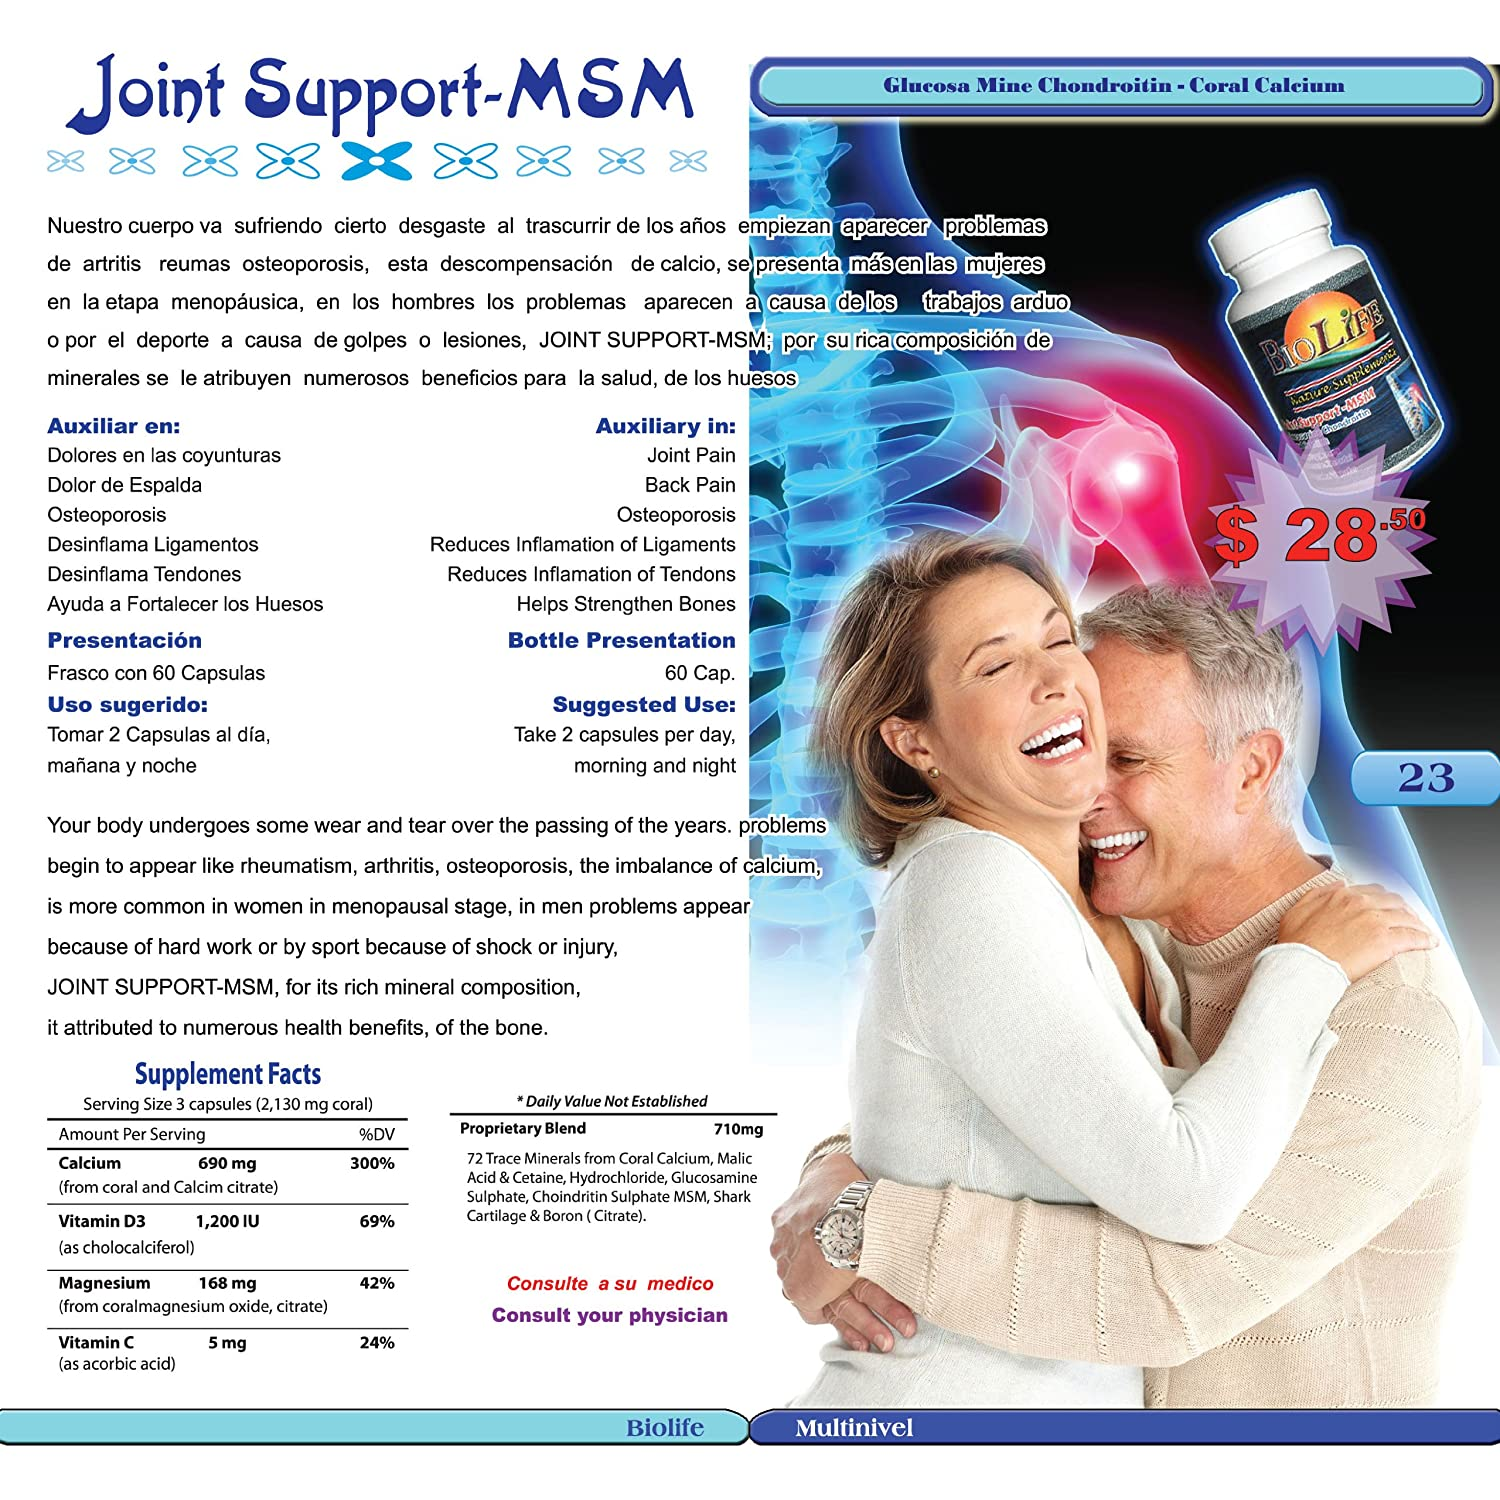 Amazon.com: Joint Support MSM 710mg 60 Caps By Biolife Glucosamine Chodroitin and 72 Trace Minerals From Coral Calcium: Health & Personal Care